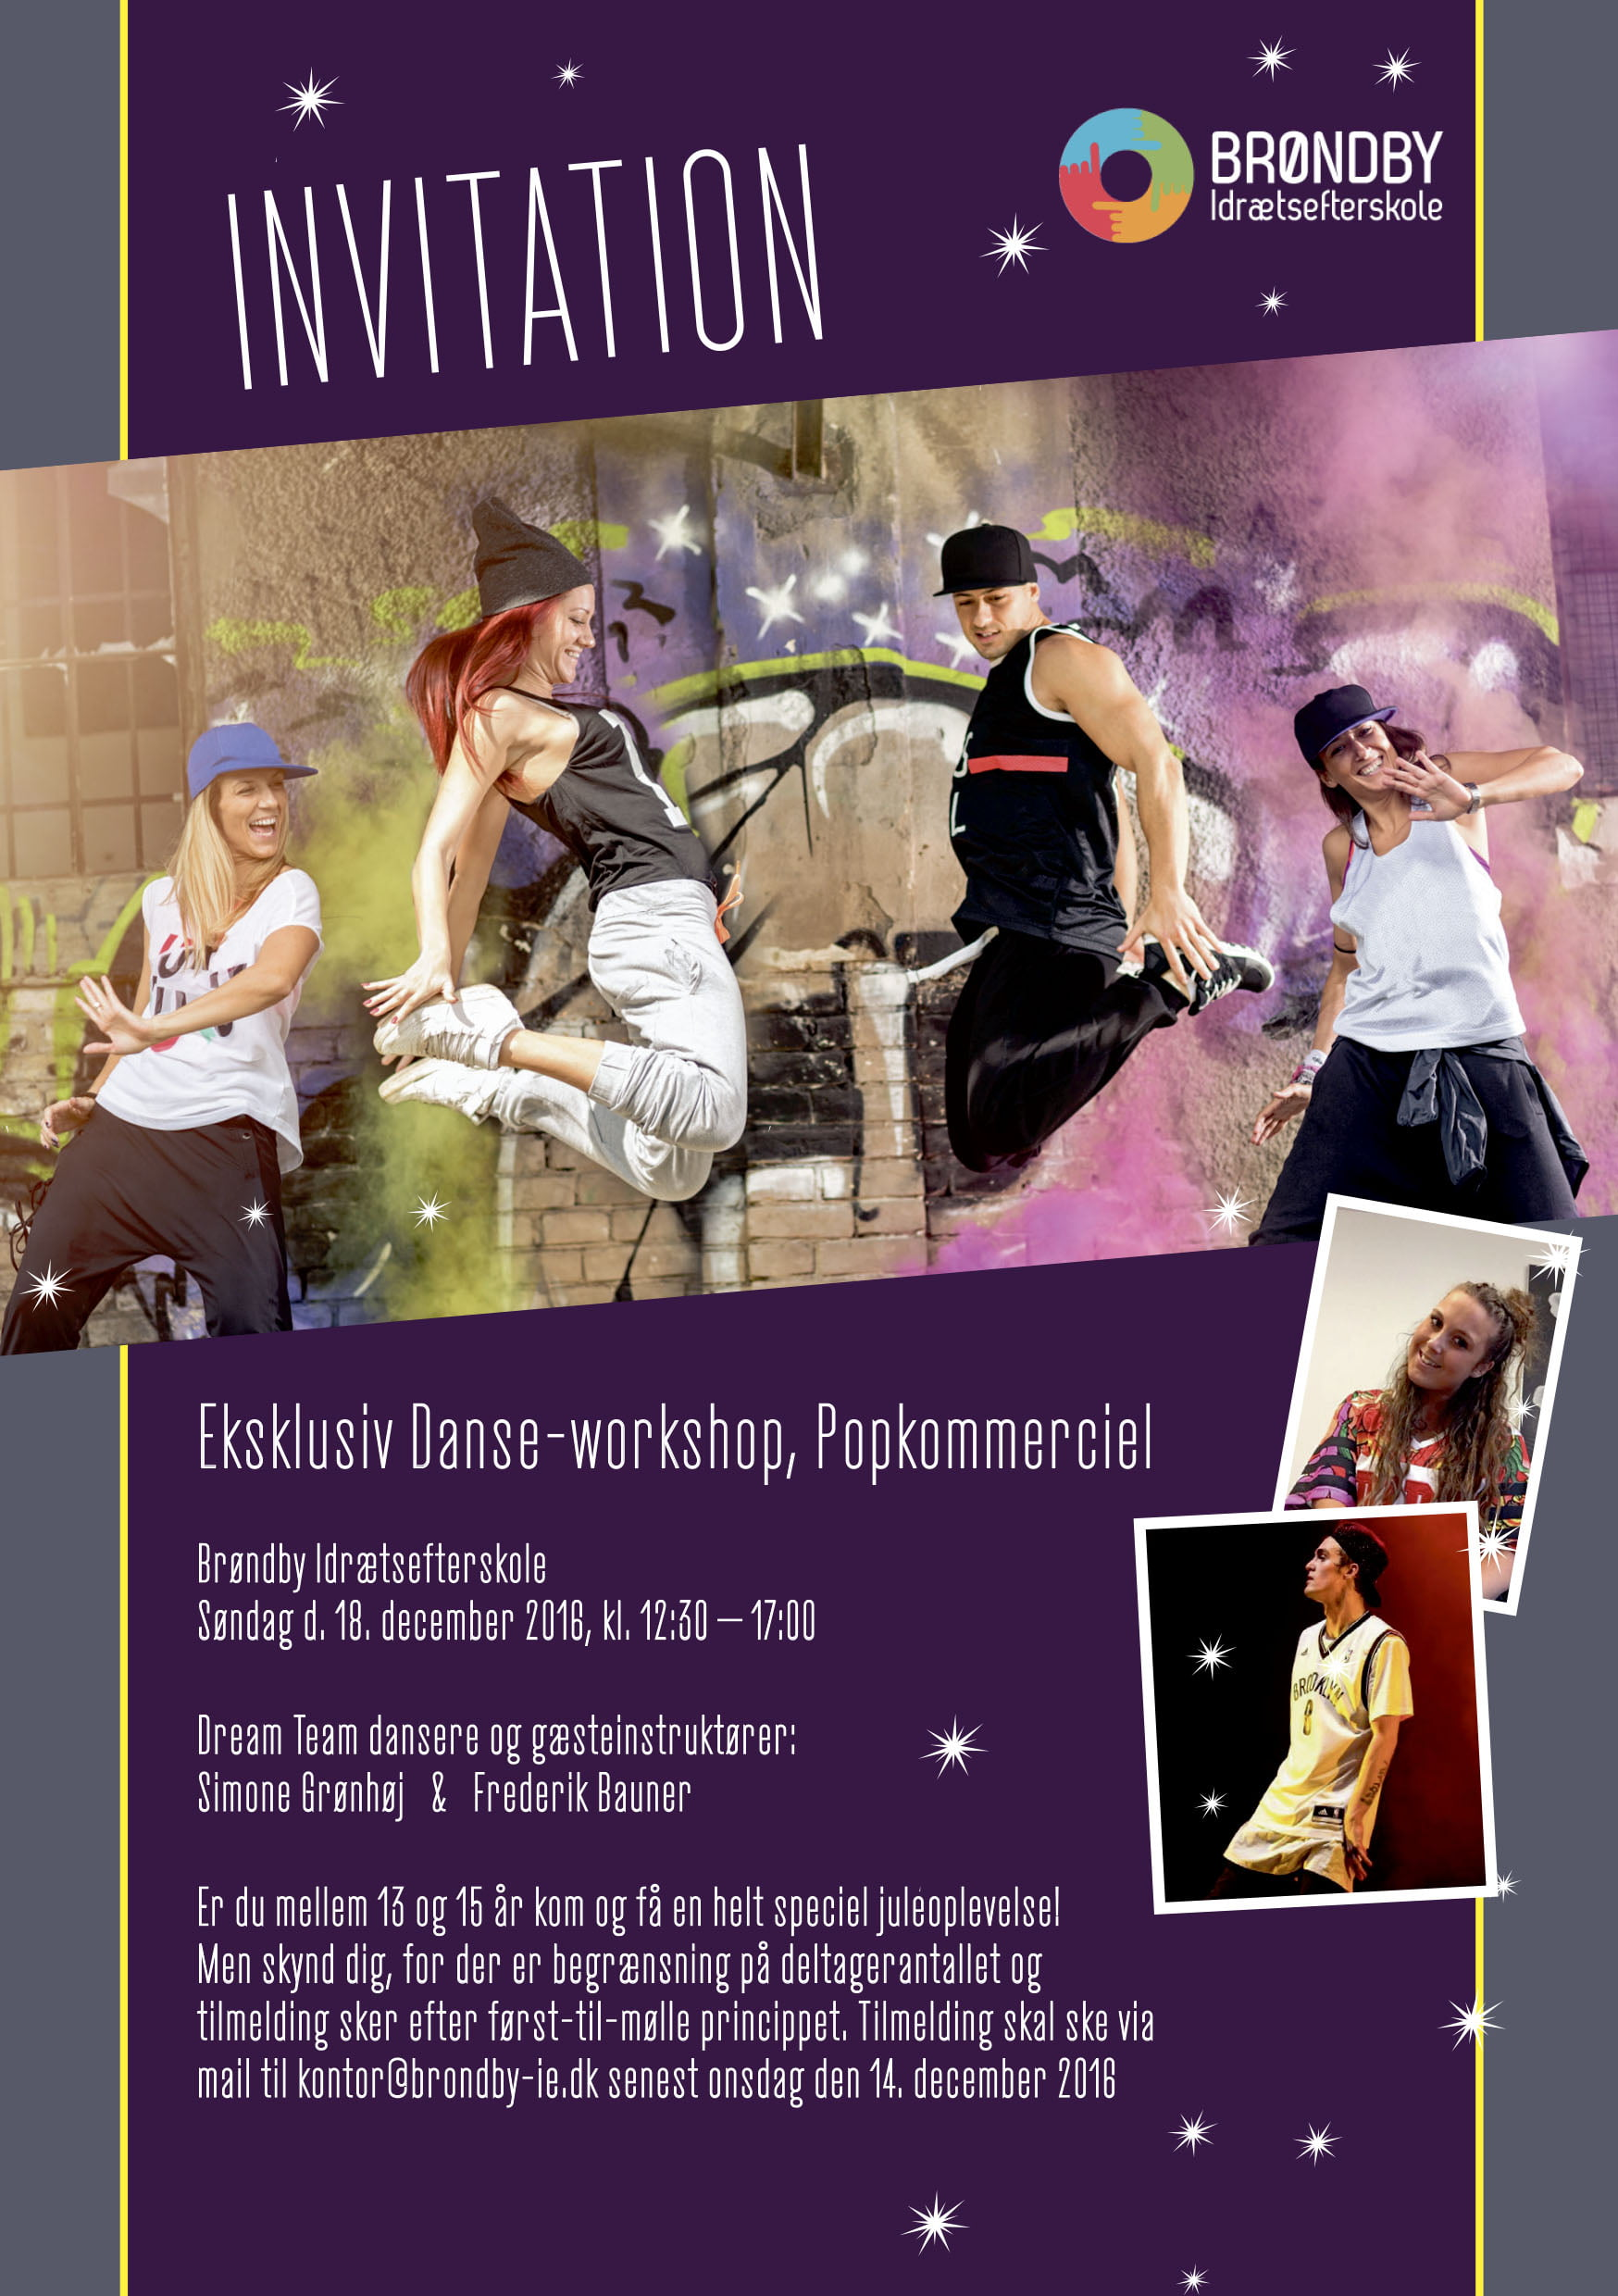 Eksklusiv danseworkshop på BIE